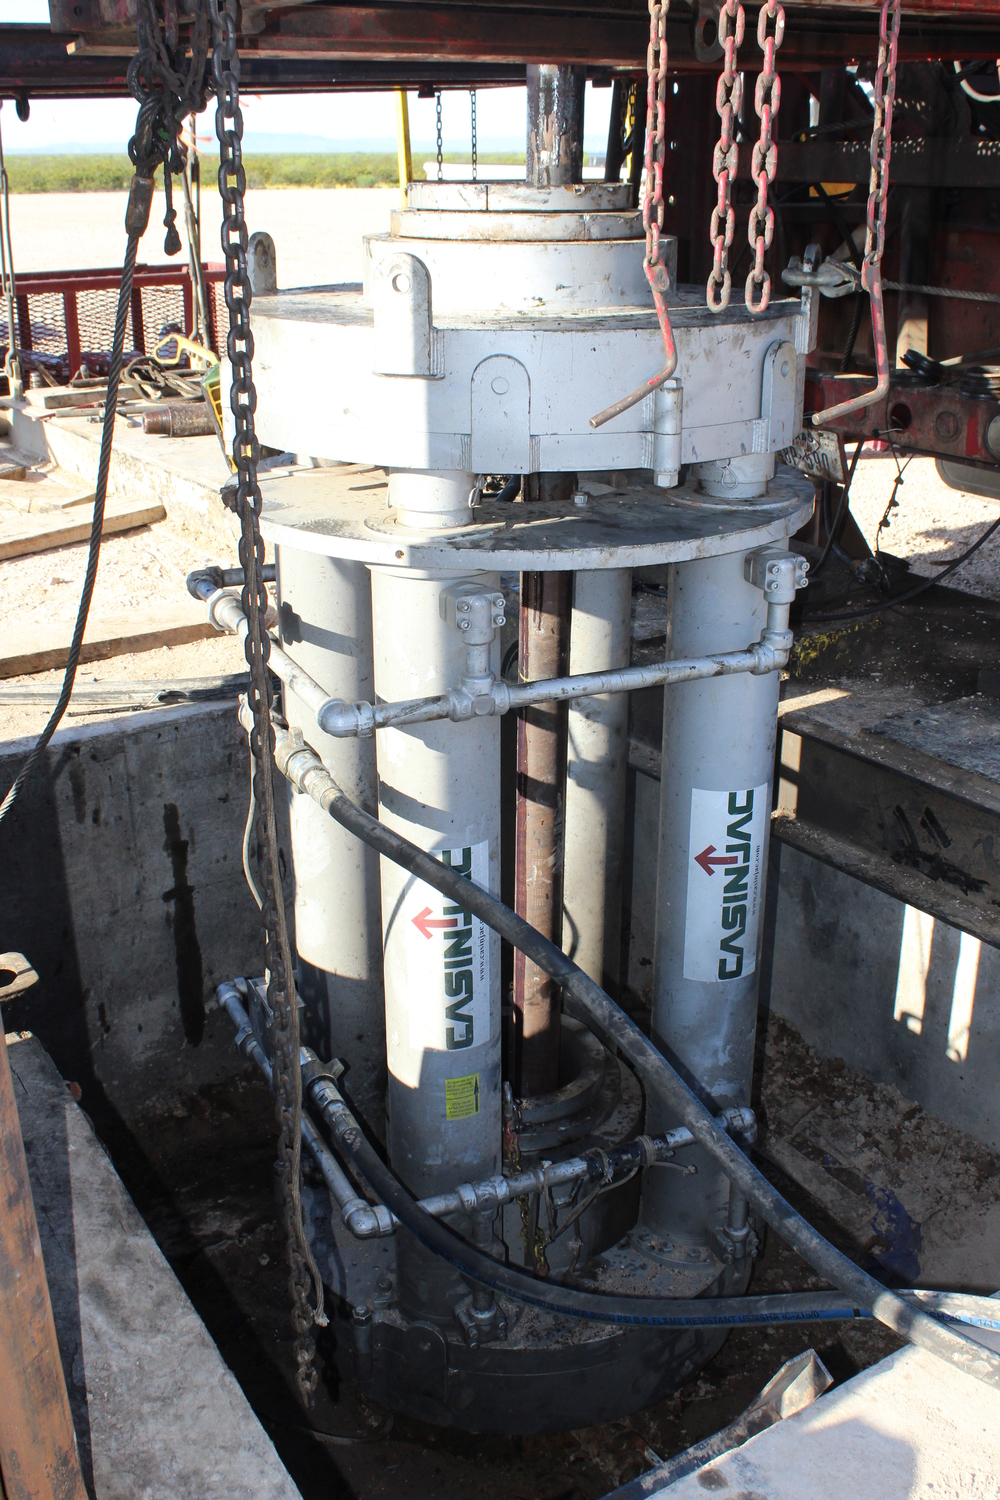 Casinjac Model 500 casing jack mounted on flange in cellar. This jack is rated at 1,000,000 lbs. and was holding 880,000 lbs. when the photo was taken.